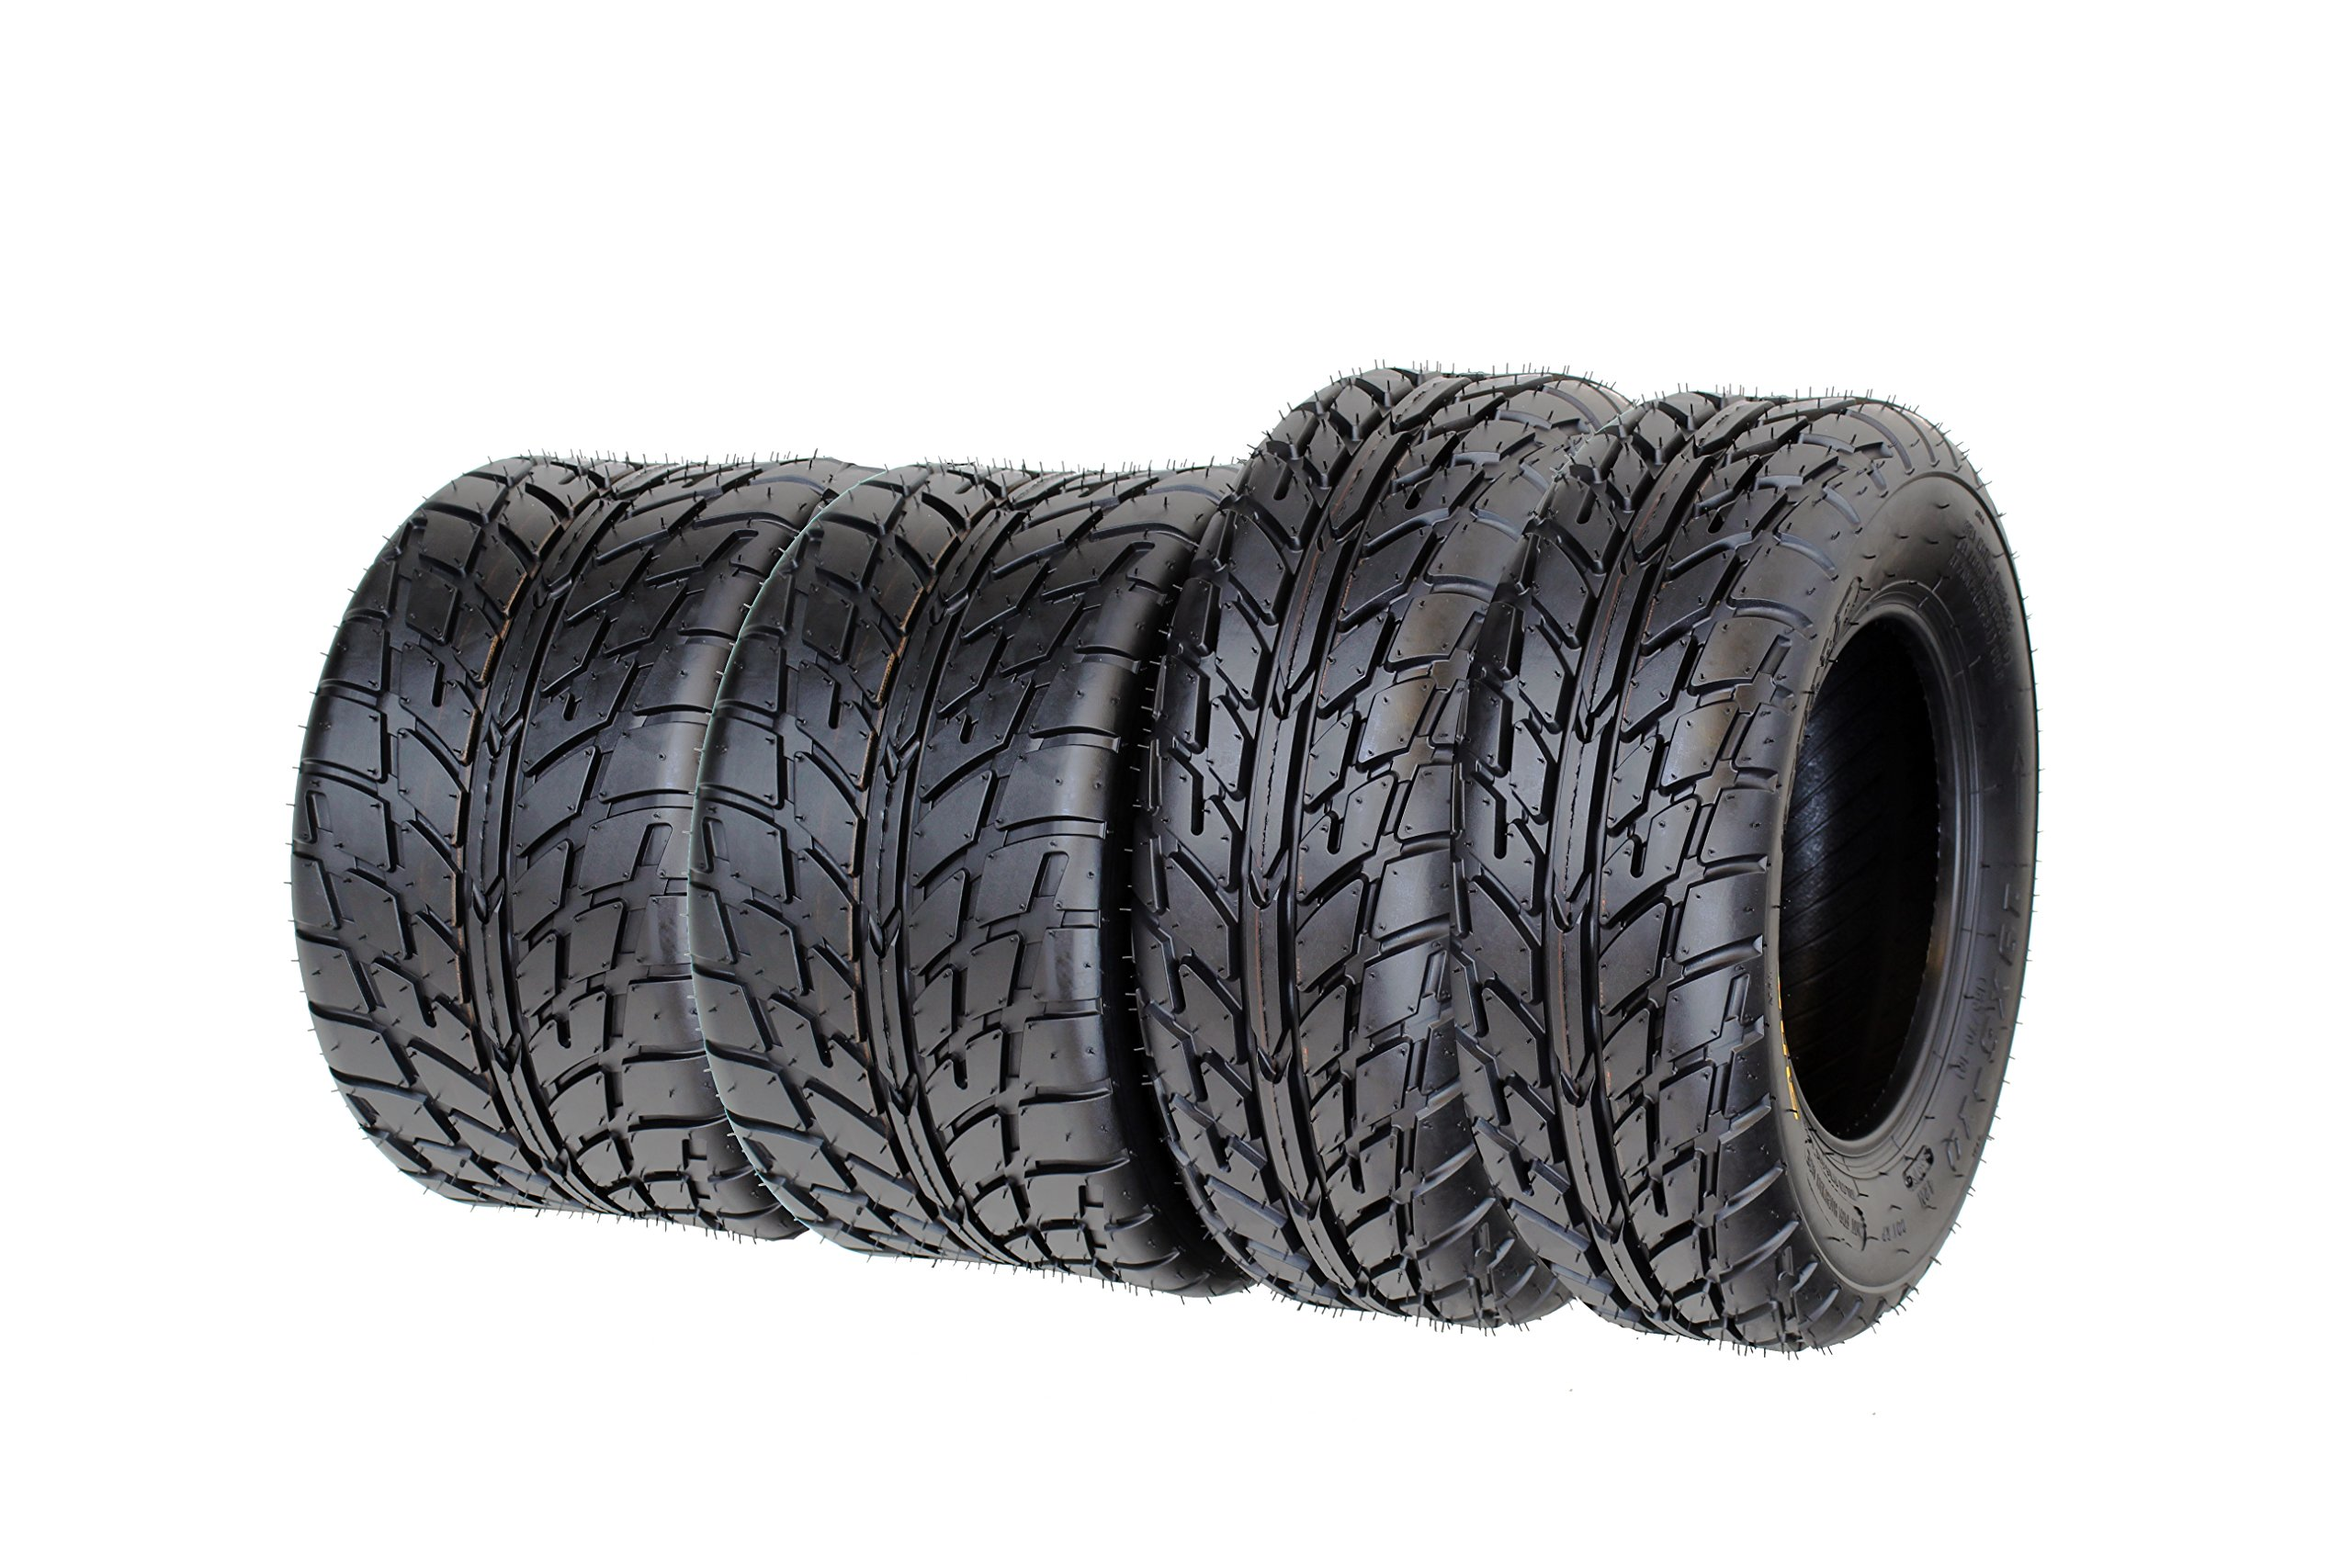 SunF A021 Road Go ATV Tires 19x6-10 & 225/45-9, 4 Ply Front&Rear